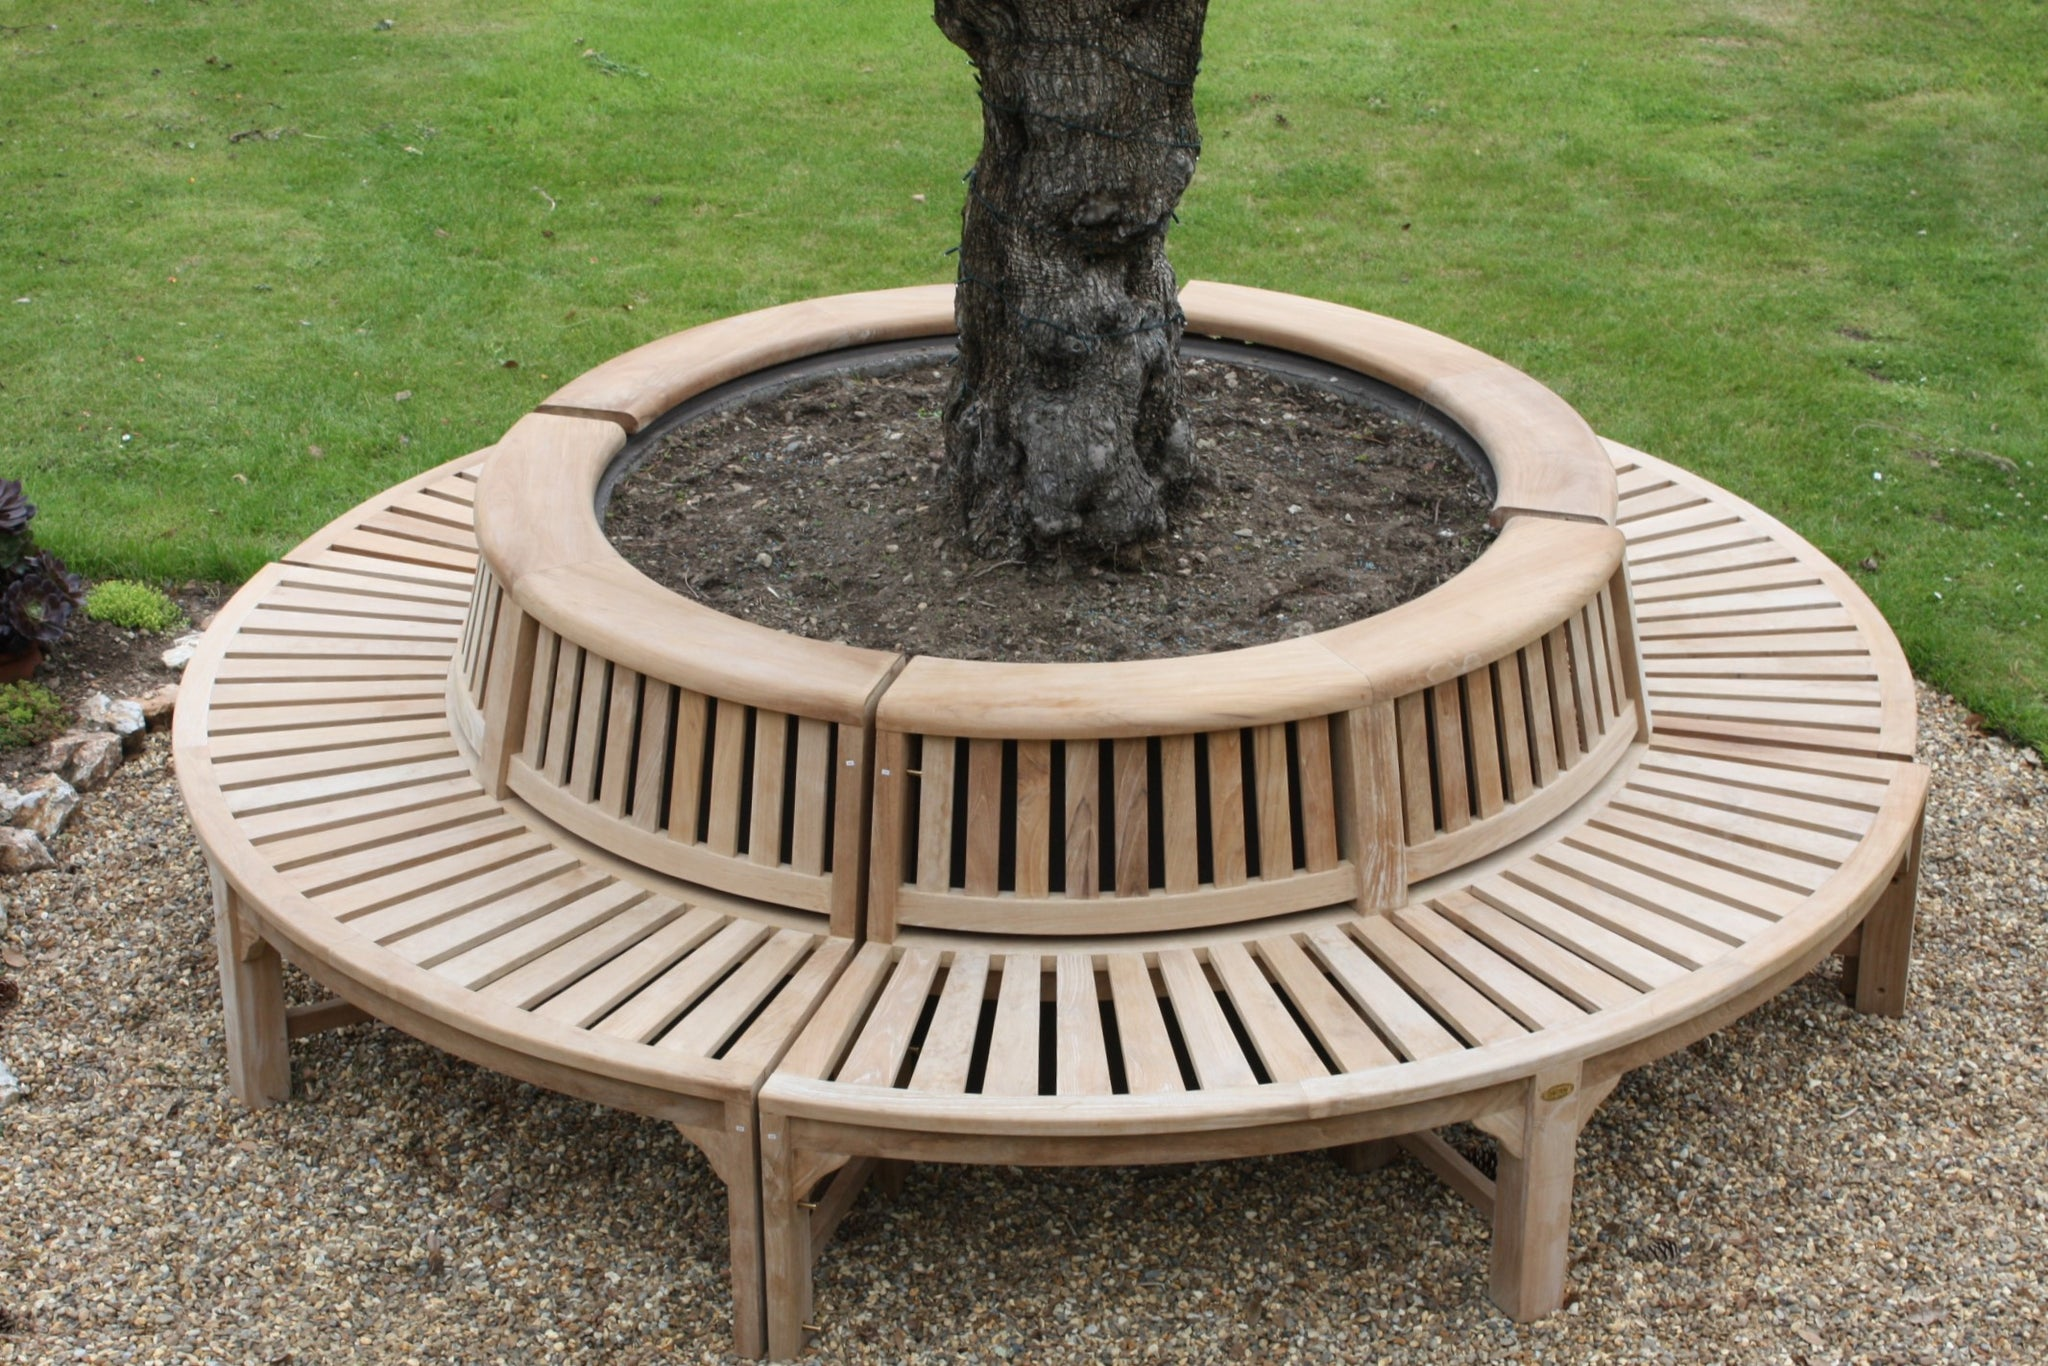 Circular teak tree bench with roll top